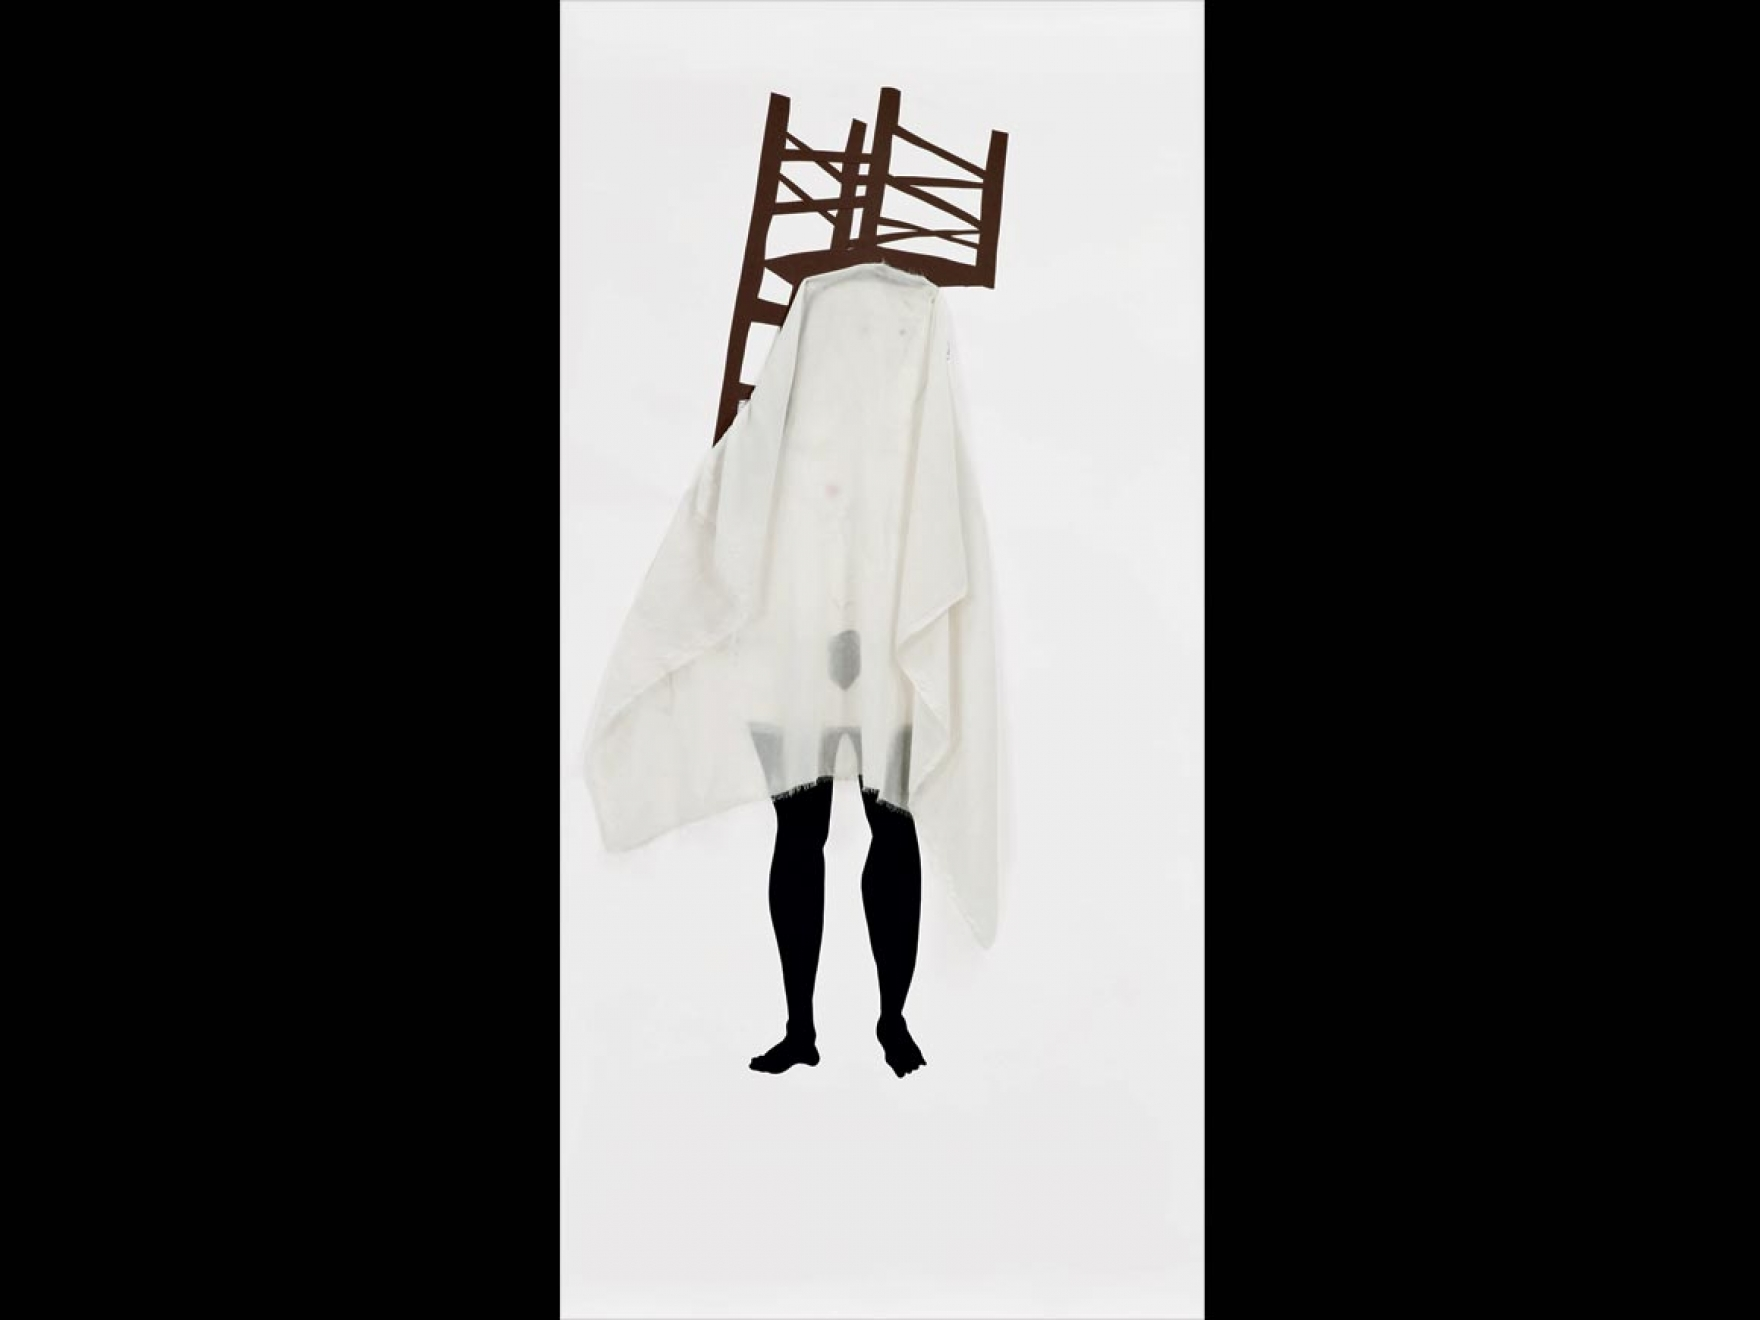 Mixed media on paper figure covered in a sheet with a chair on top of their head